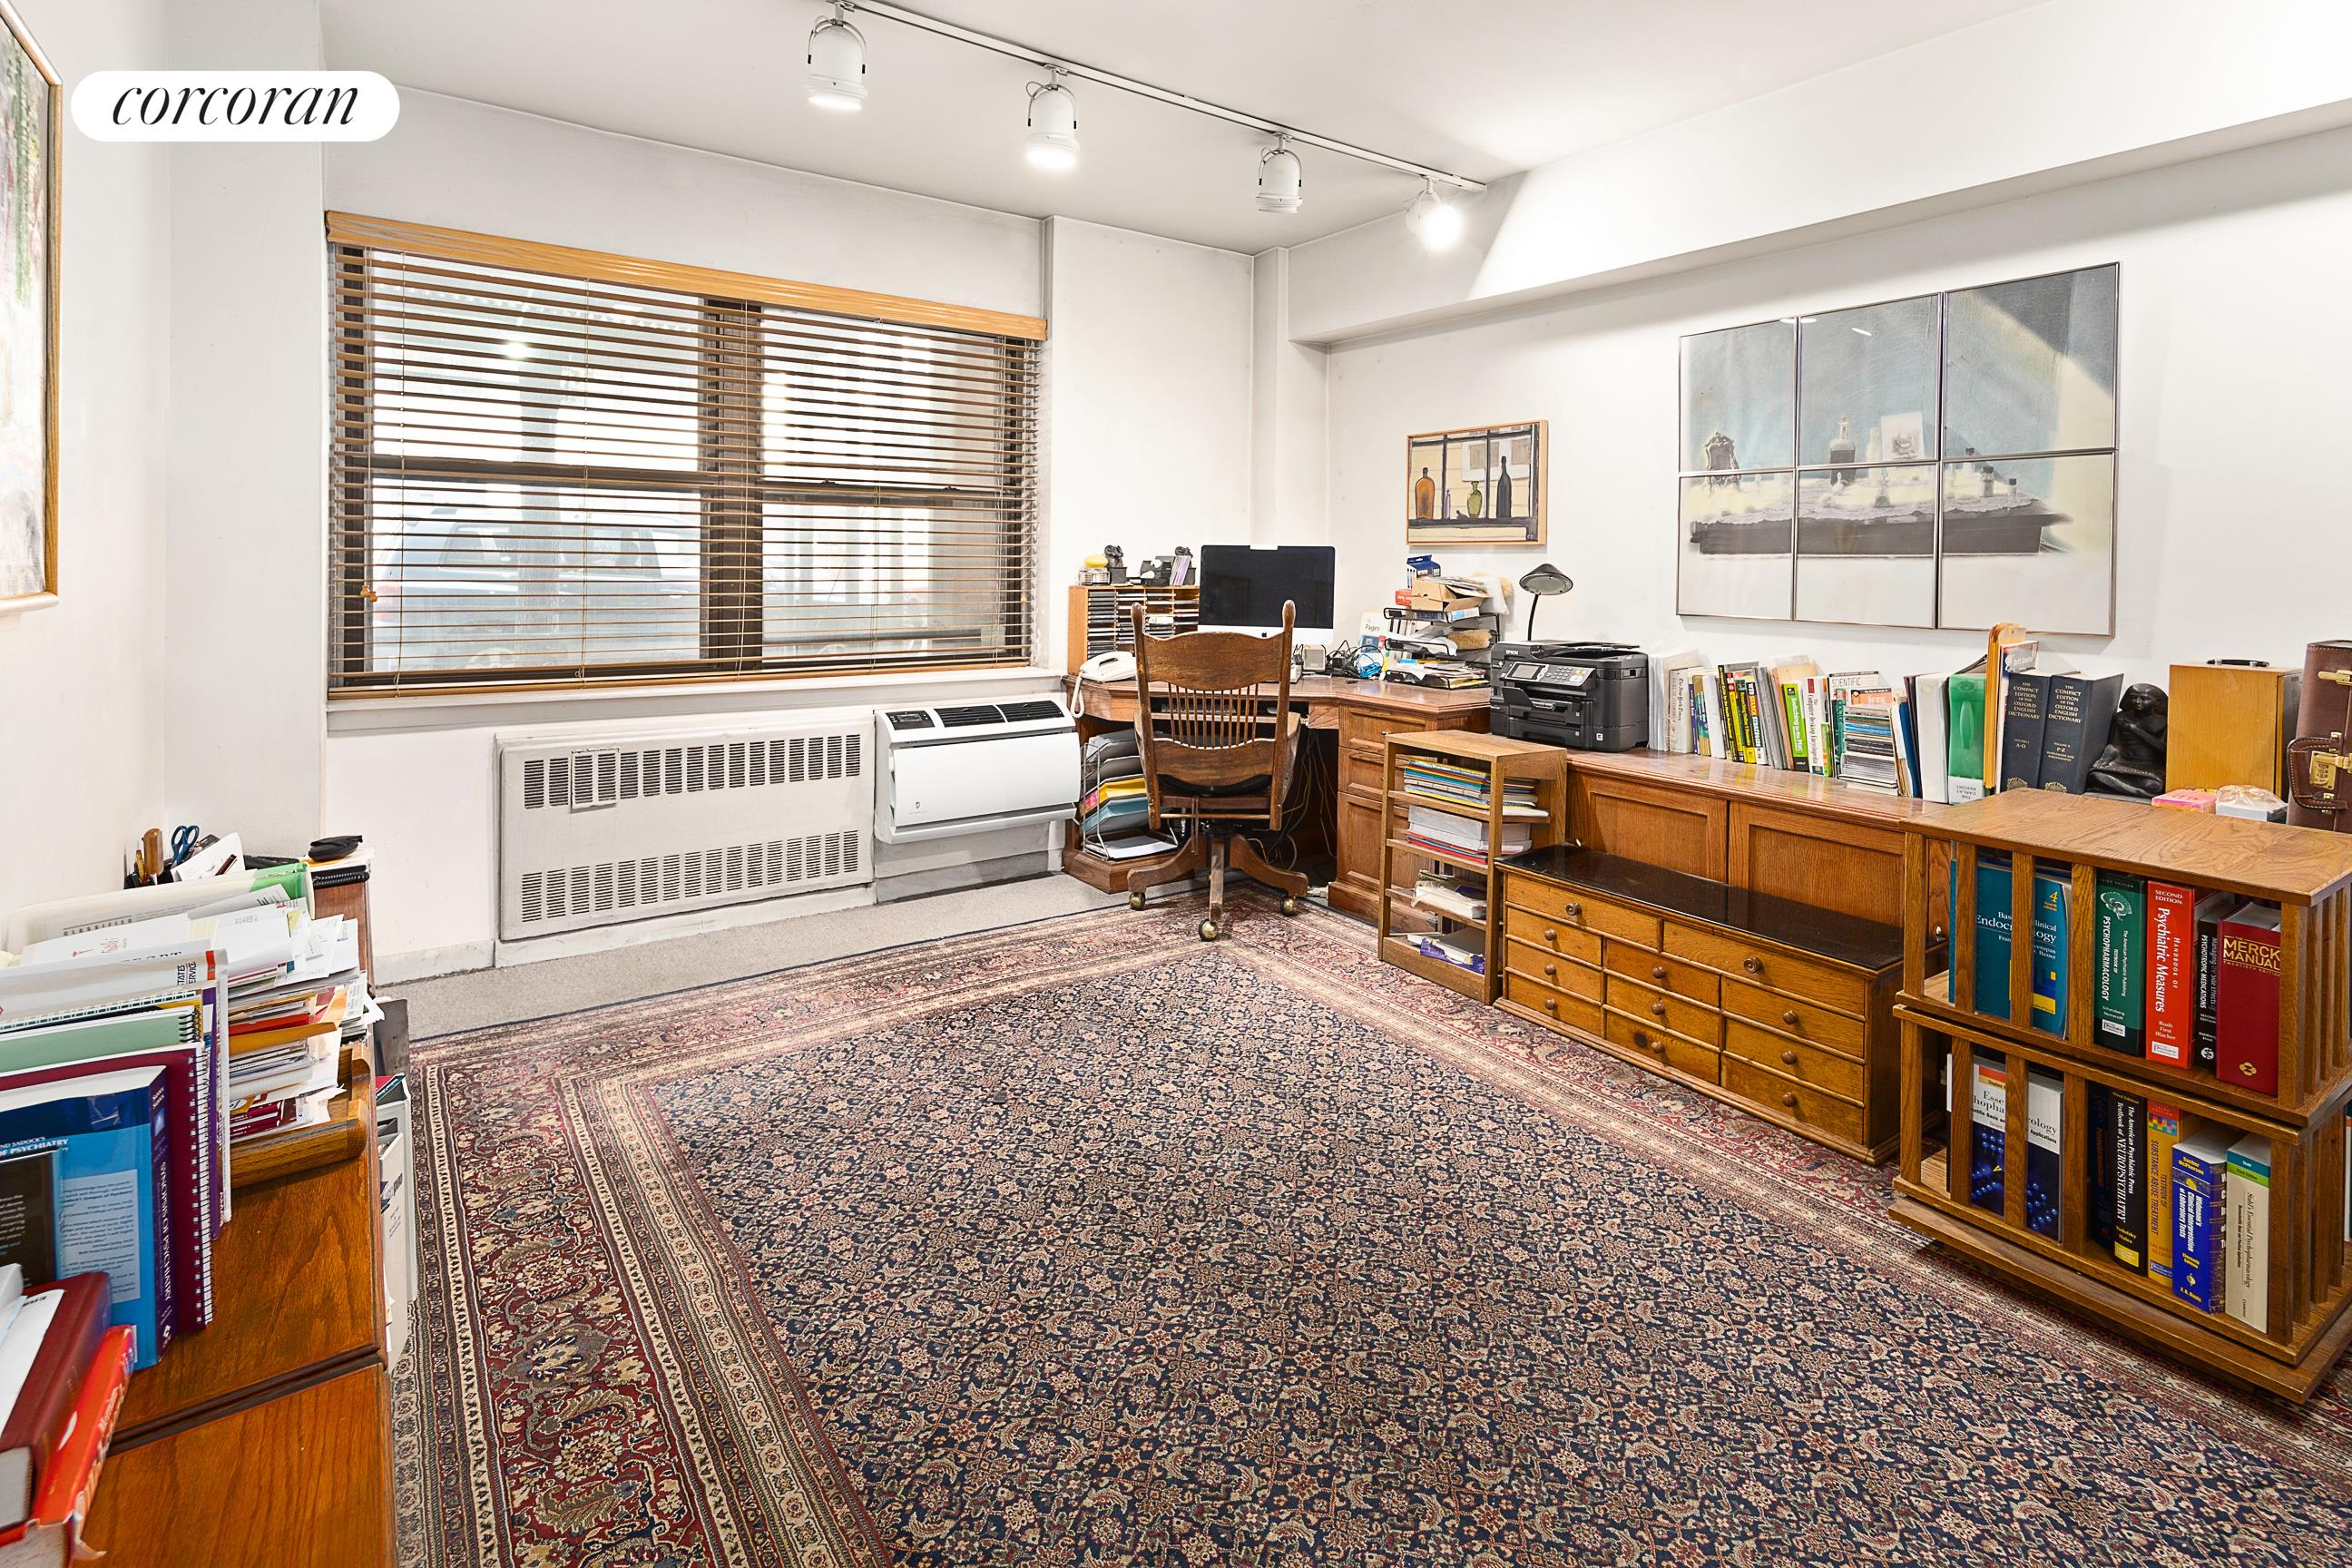 Apartment for sale at 510 East 86th Street, Apt 1D